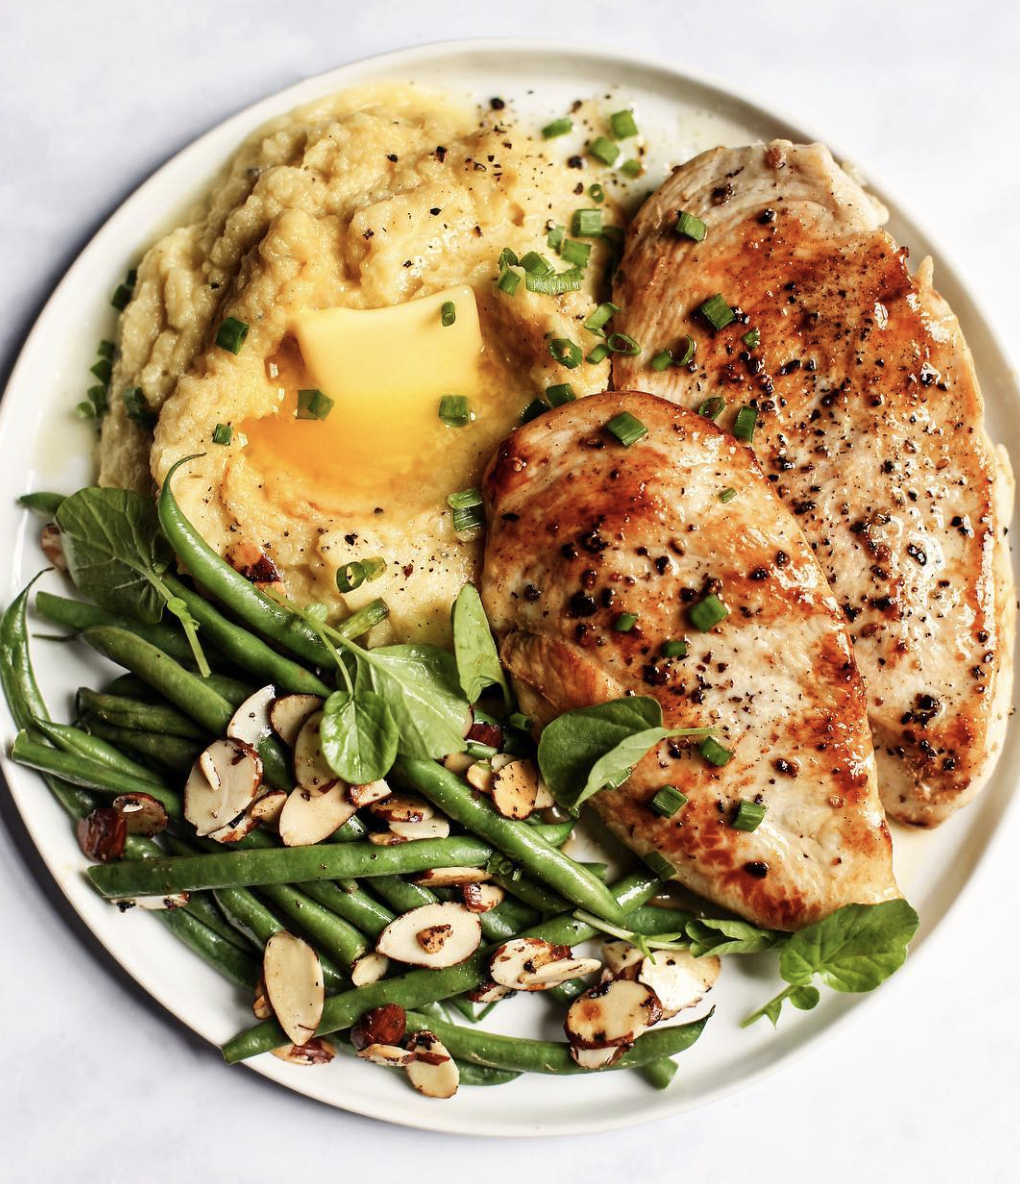 Maple Chicken with Mashed Spaghetti Squash and Toasted Almond Green Beans